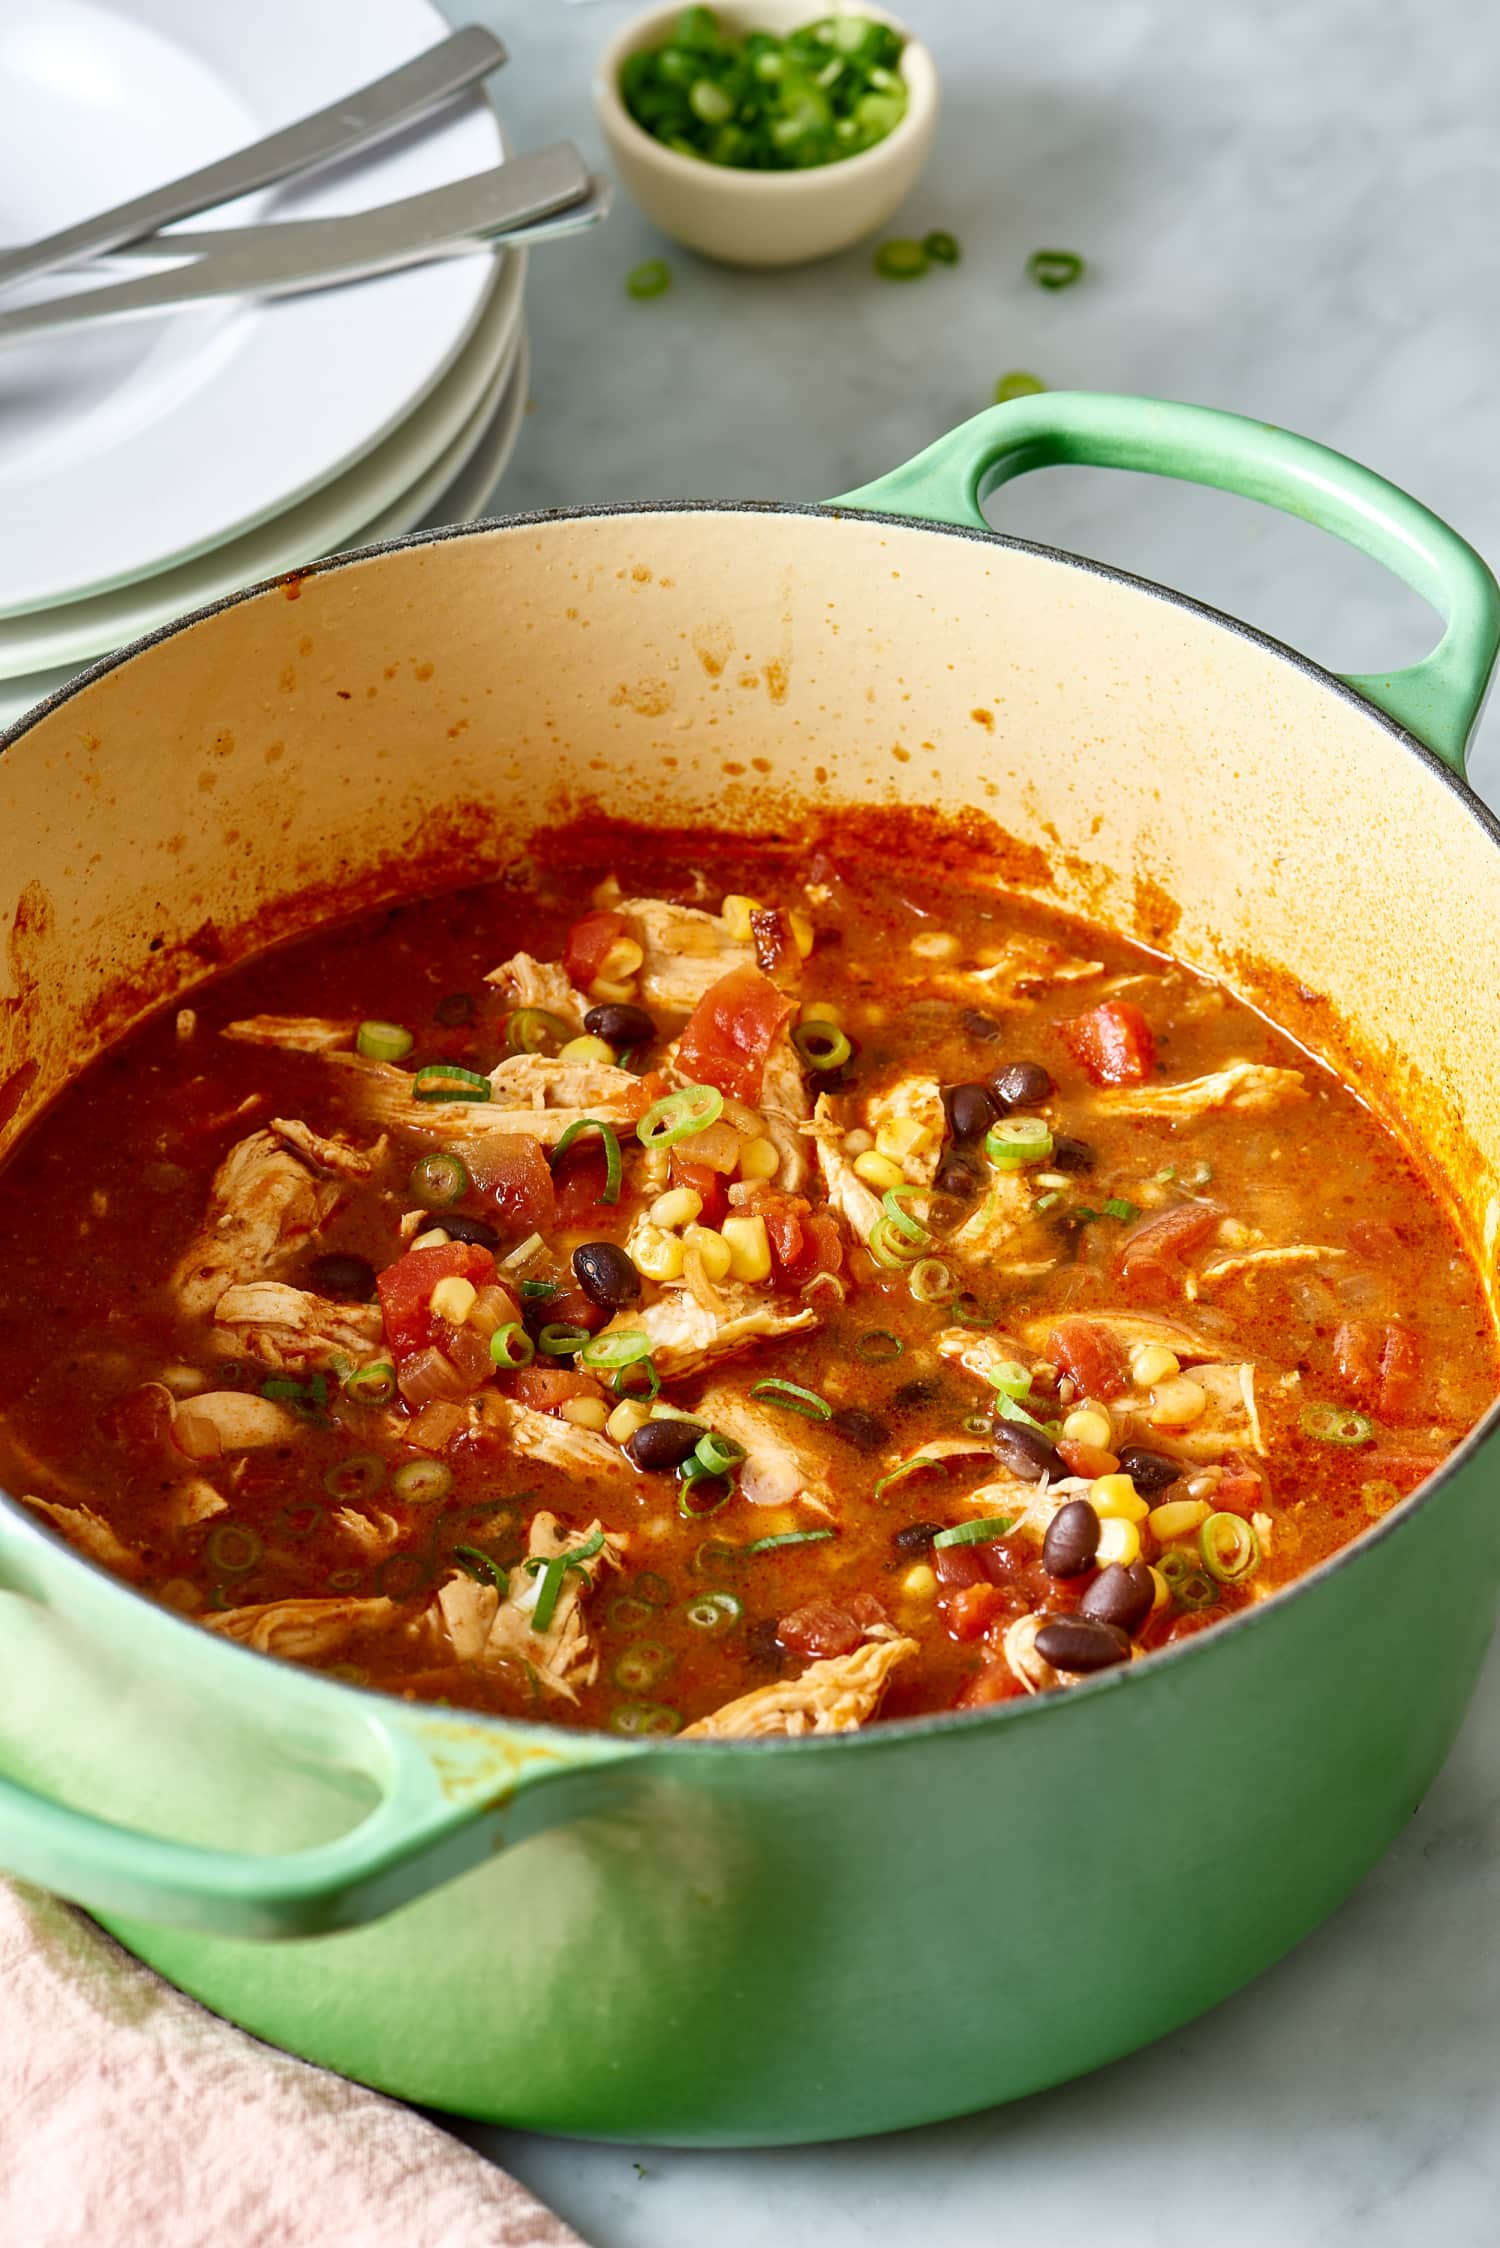 10 Easy Weeknight Dinners to Make in Your Dutch Oven